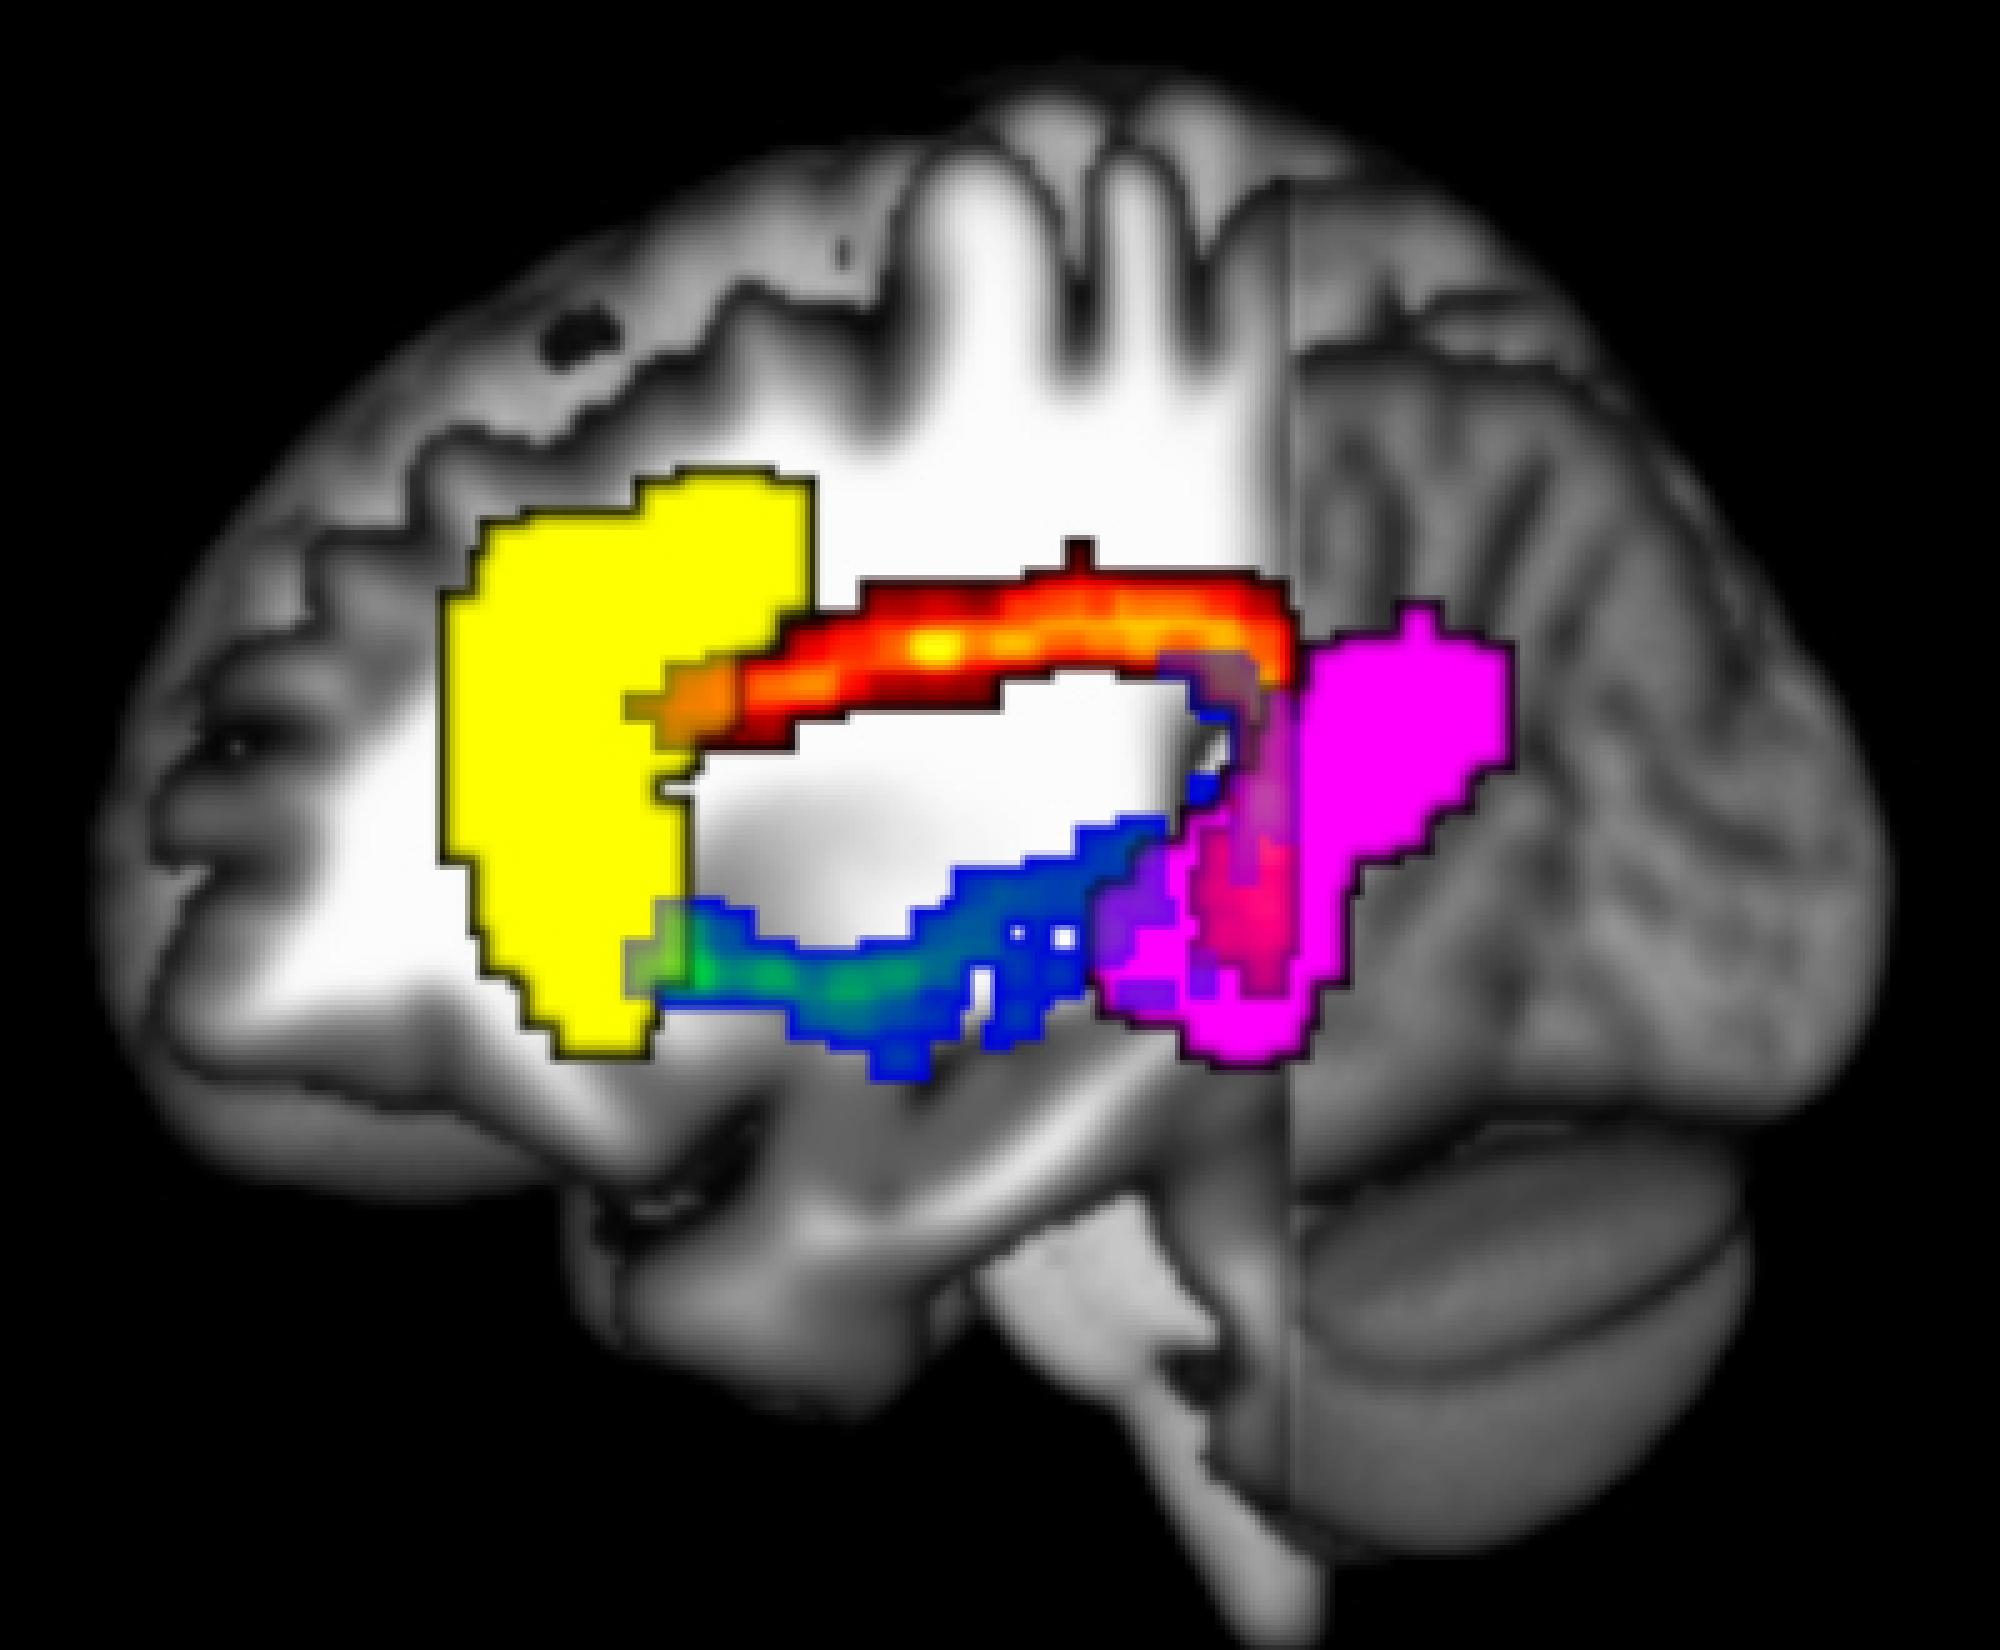 Using magnetic resonance imaging of the brain, researchers can visualize the two main language processing regions, Broca's region  and Wernicke's region .